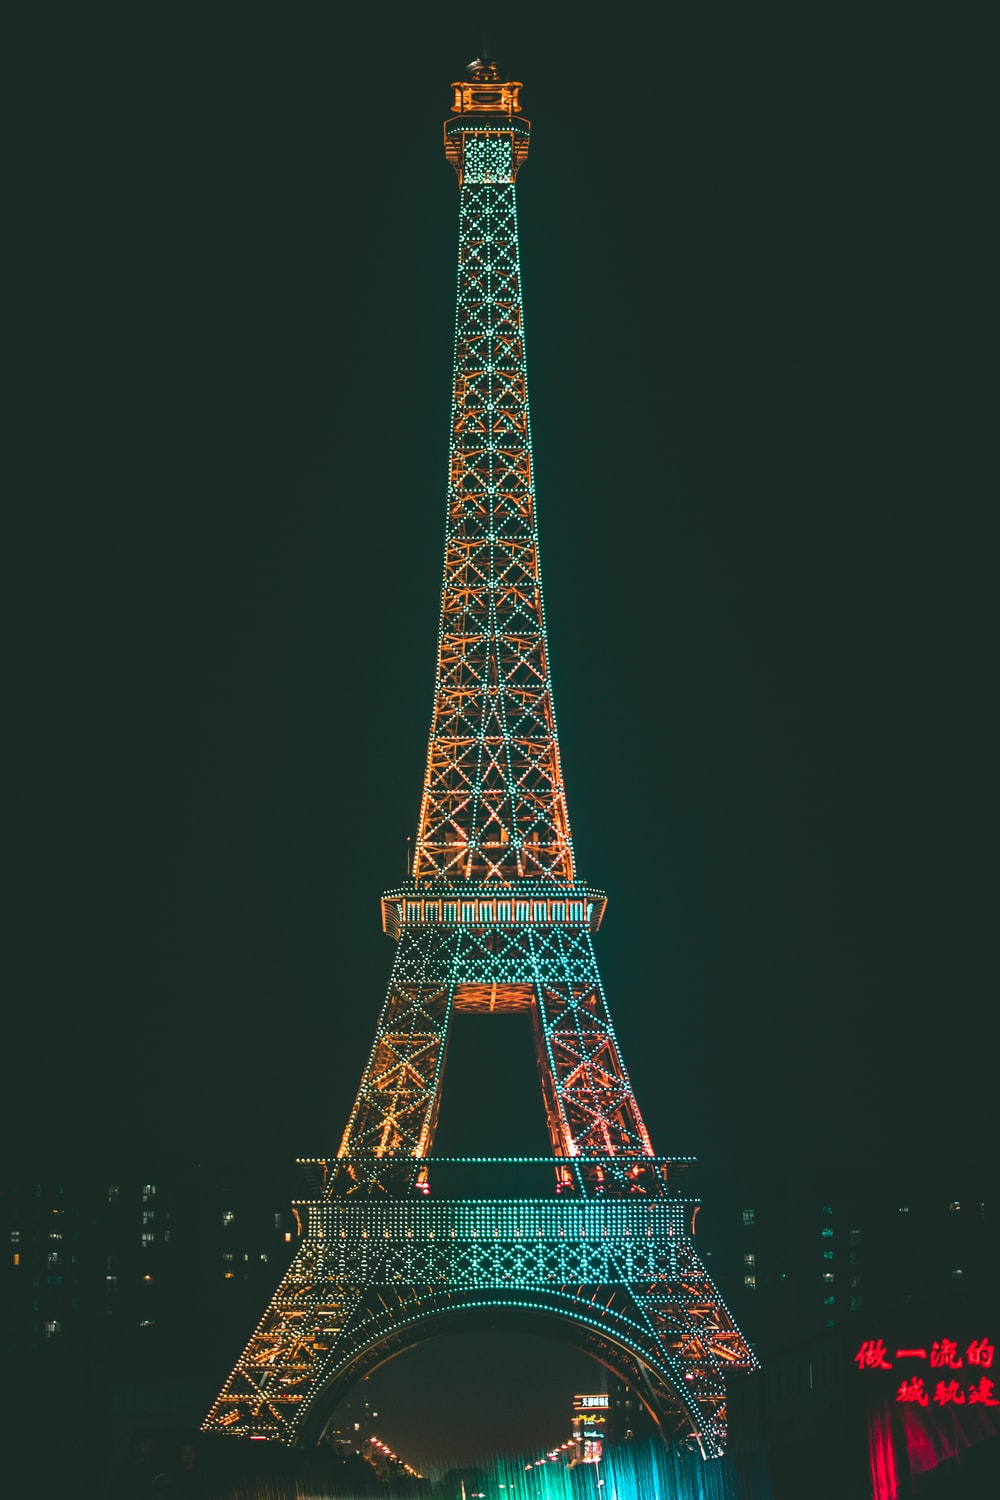 gray and brown Eiffel Tower